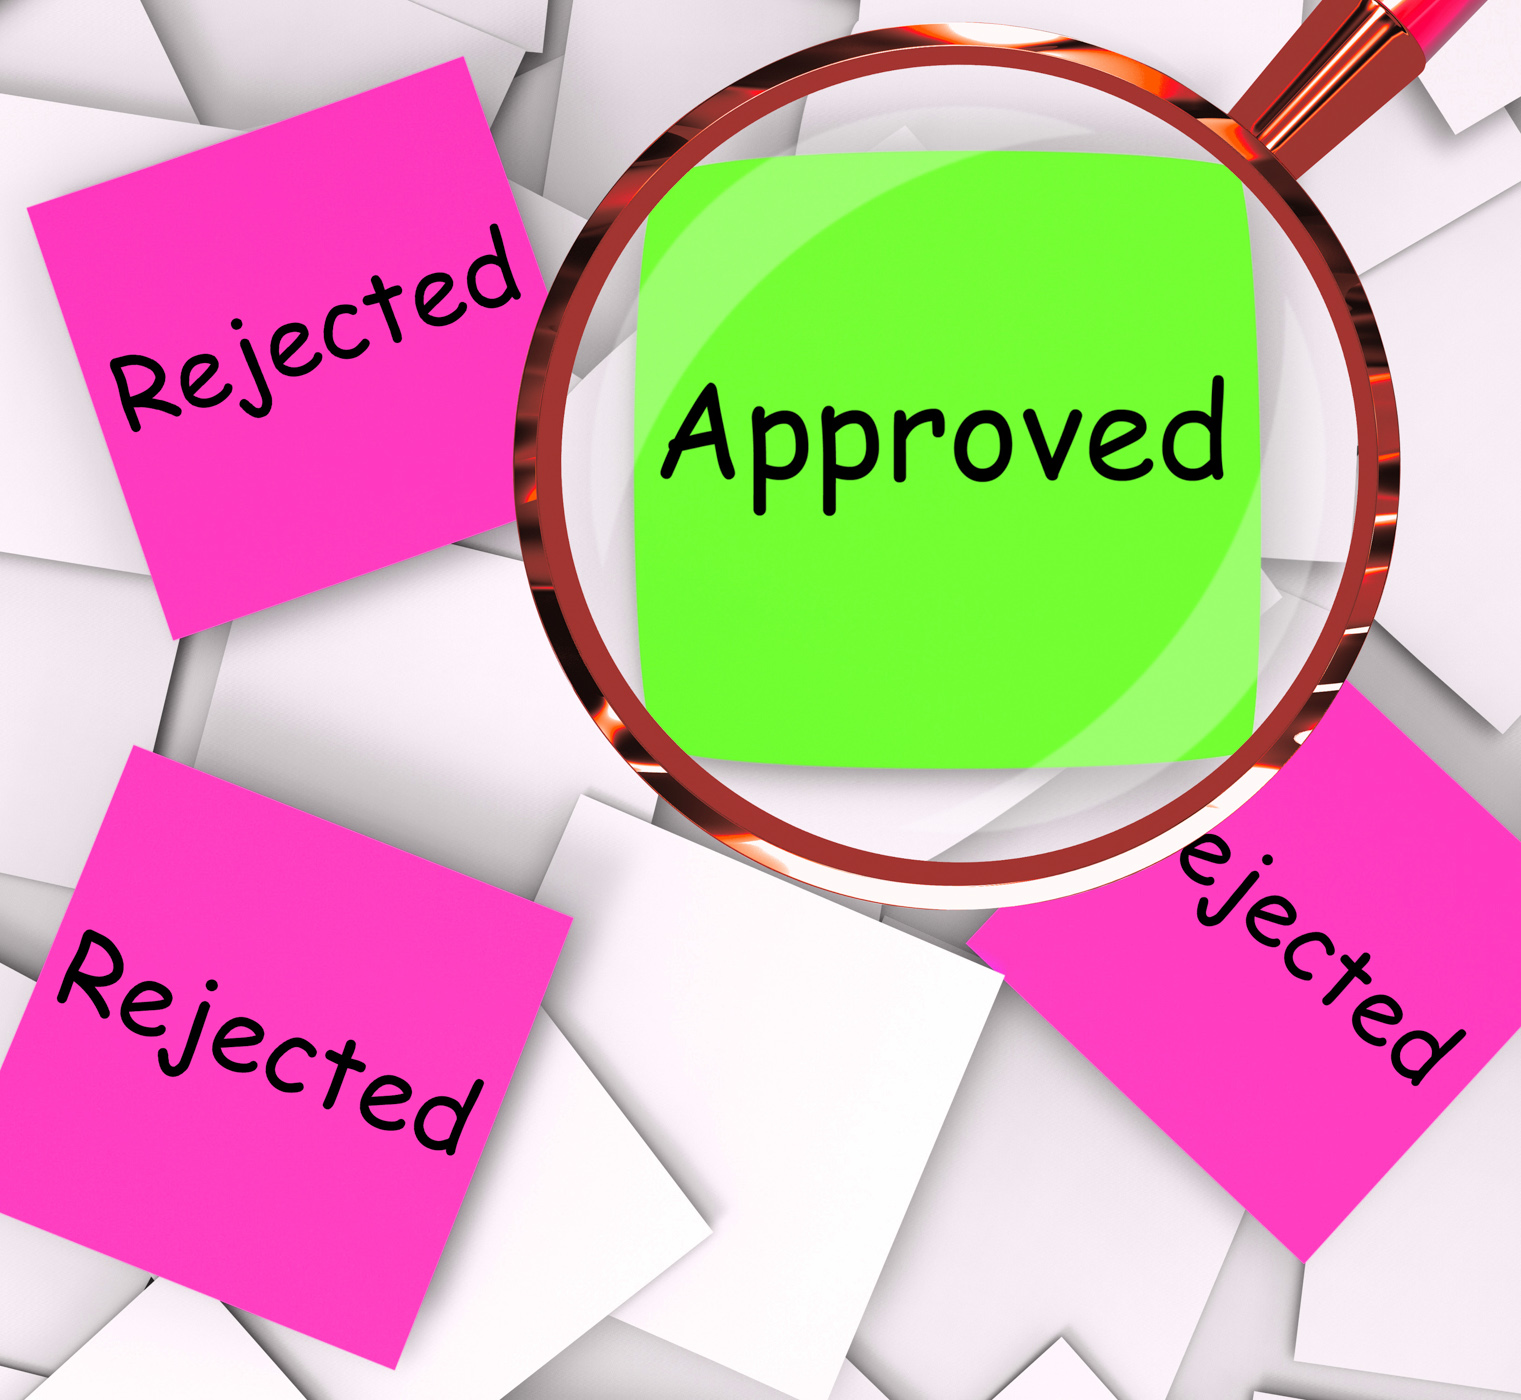 Approved rejected post-it papers means approval or rejection photo